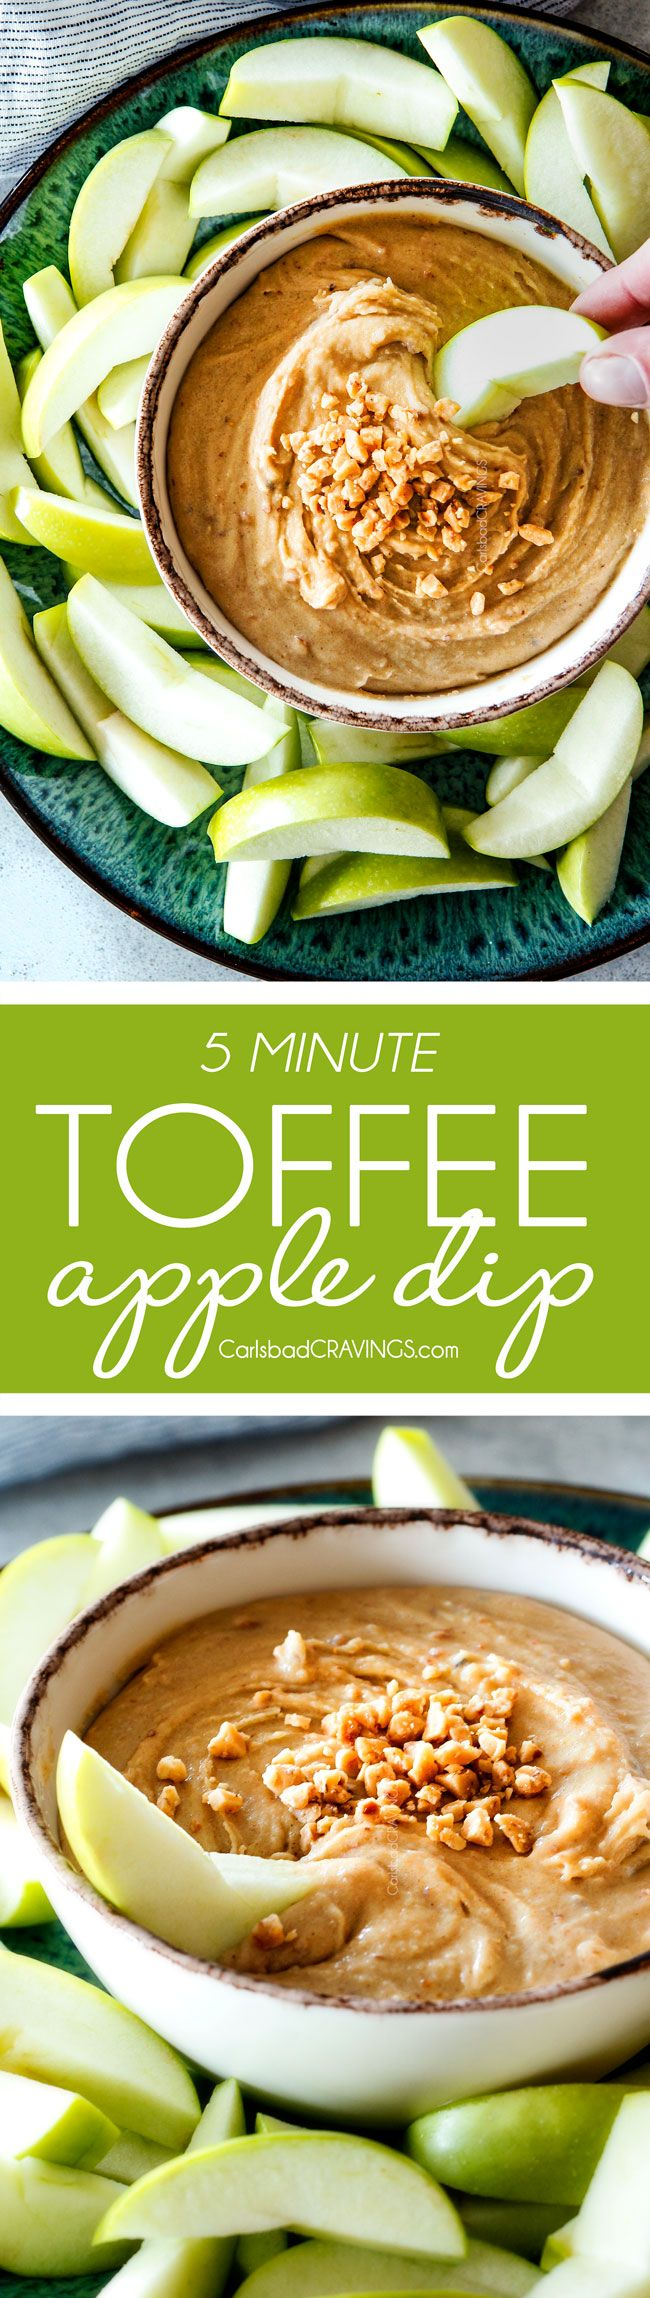 5 MinuteCream Cheese Toffee Apple Dip is my go-to party dip! Its rich and creamy with crunchy, sweet toffee bits and couldn't be any easier! Everyone goes crazy for this dip!